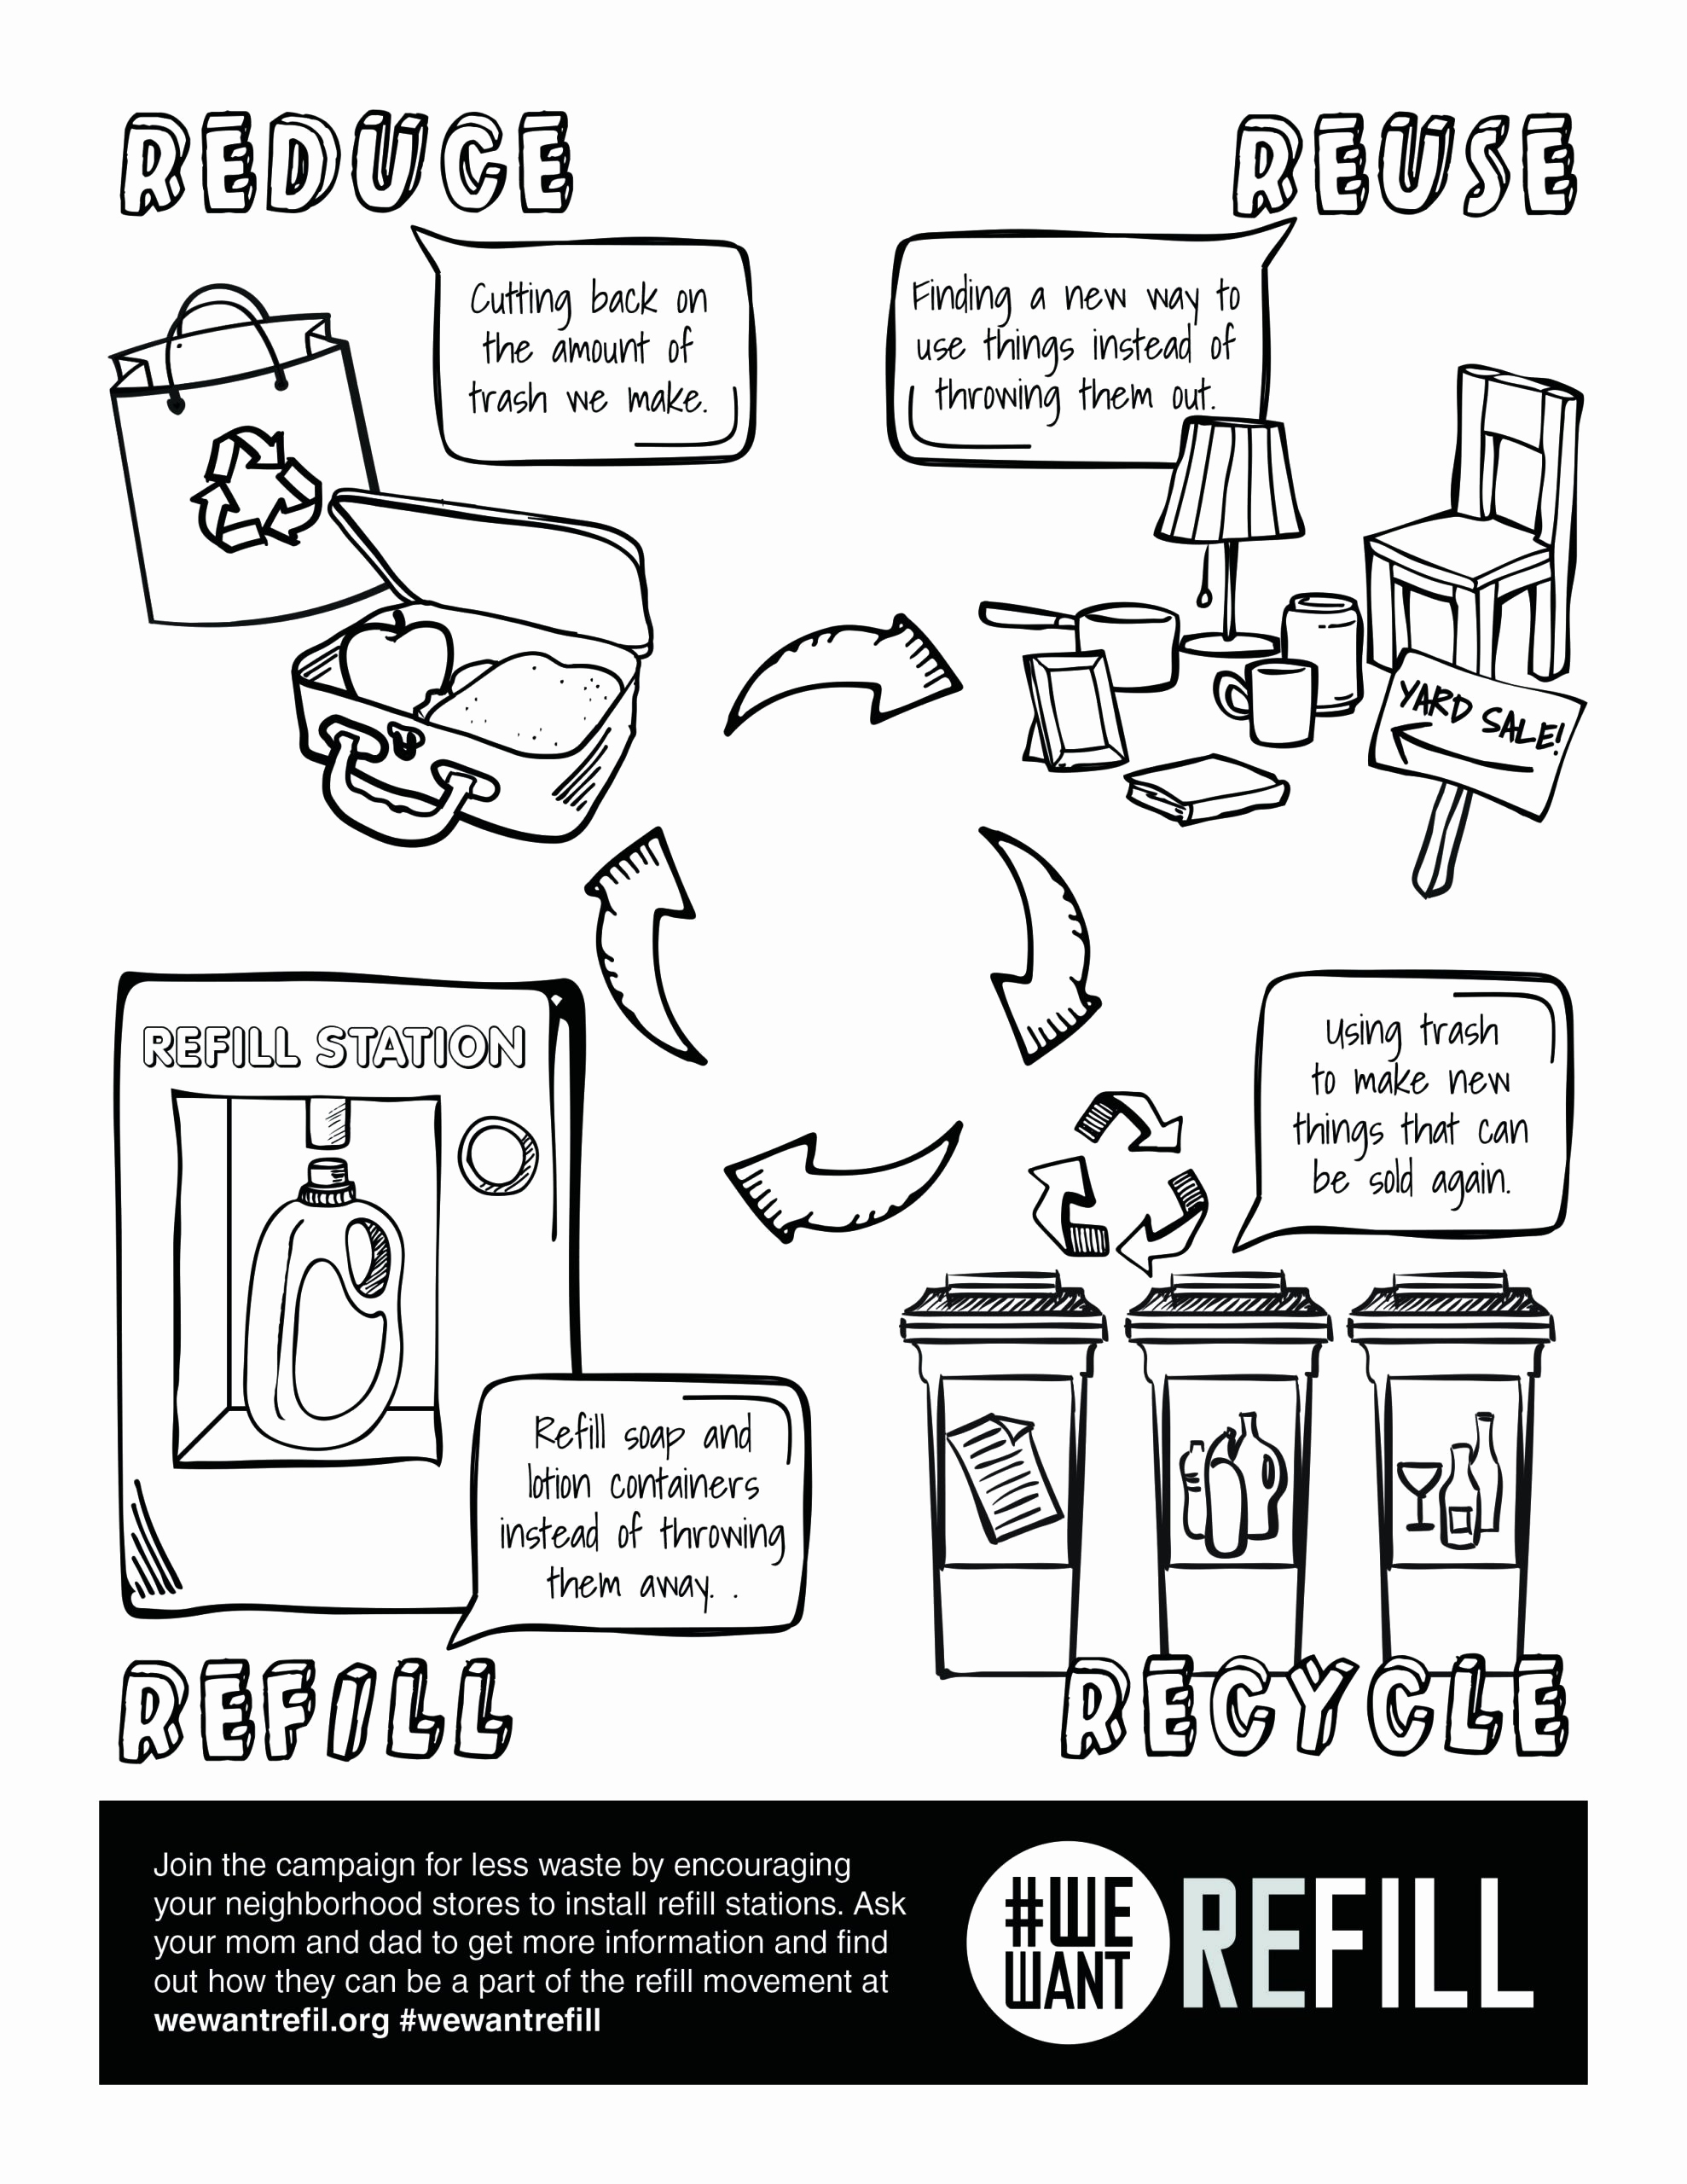 Recycling Worksheets for Middle School Beautiful Recycling Worksheets for Middle School